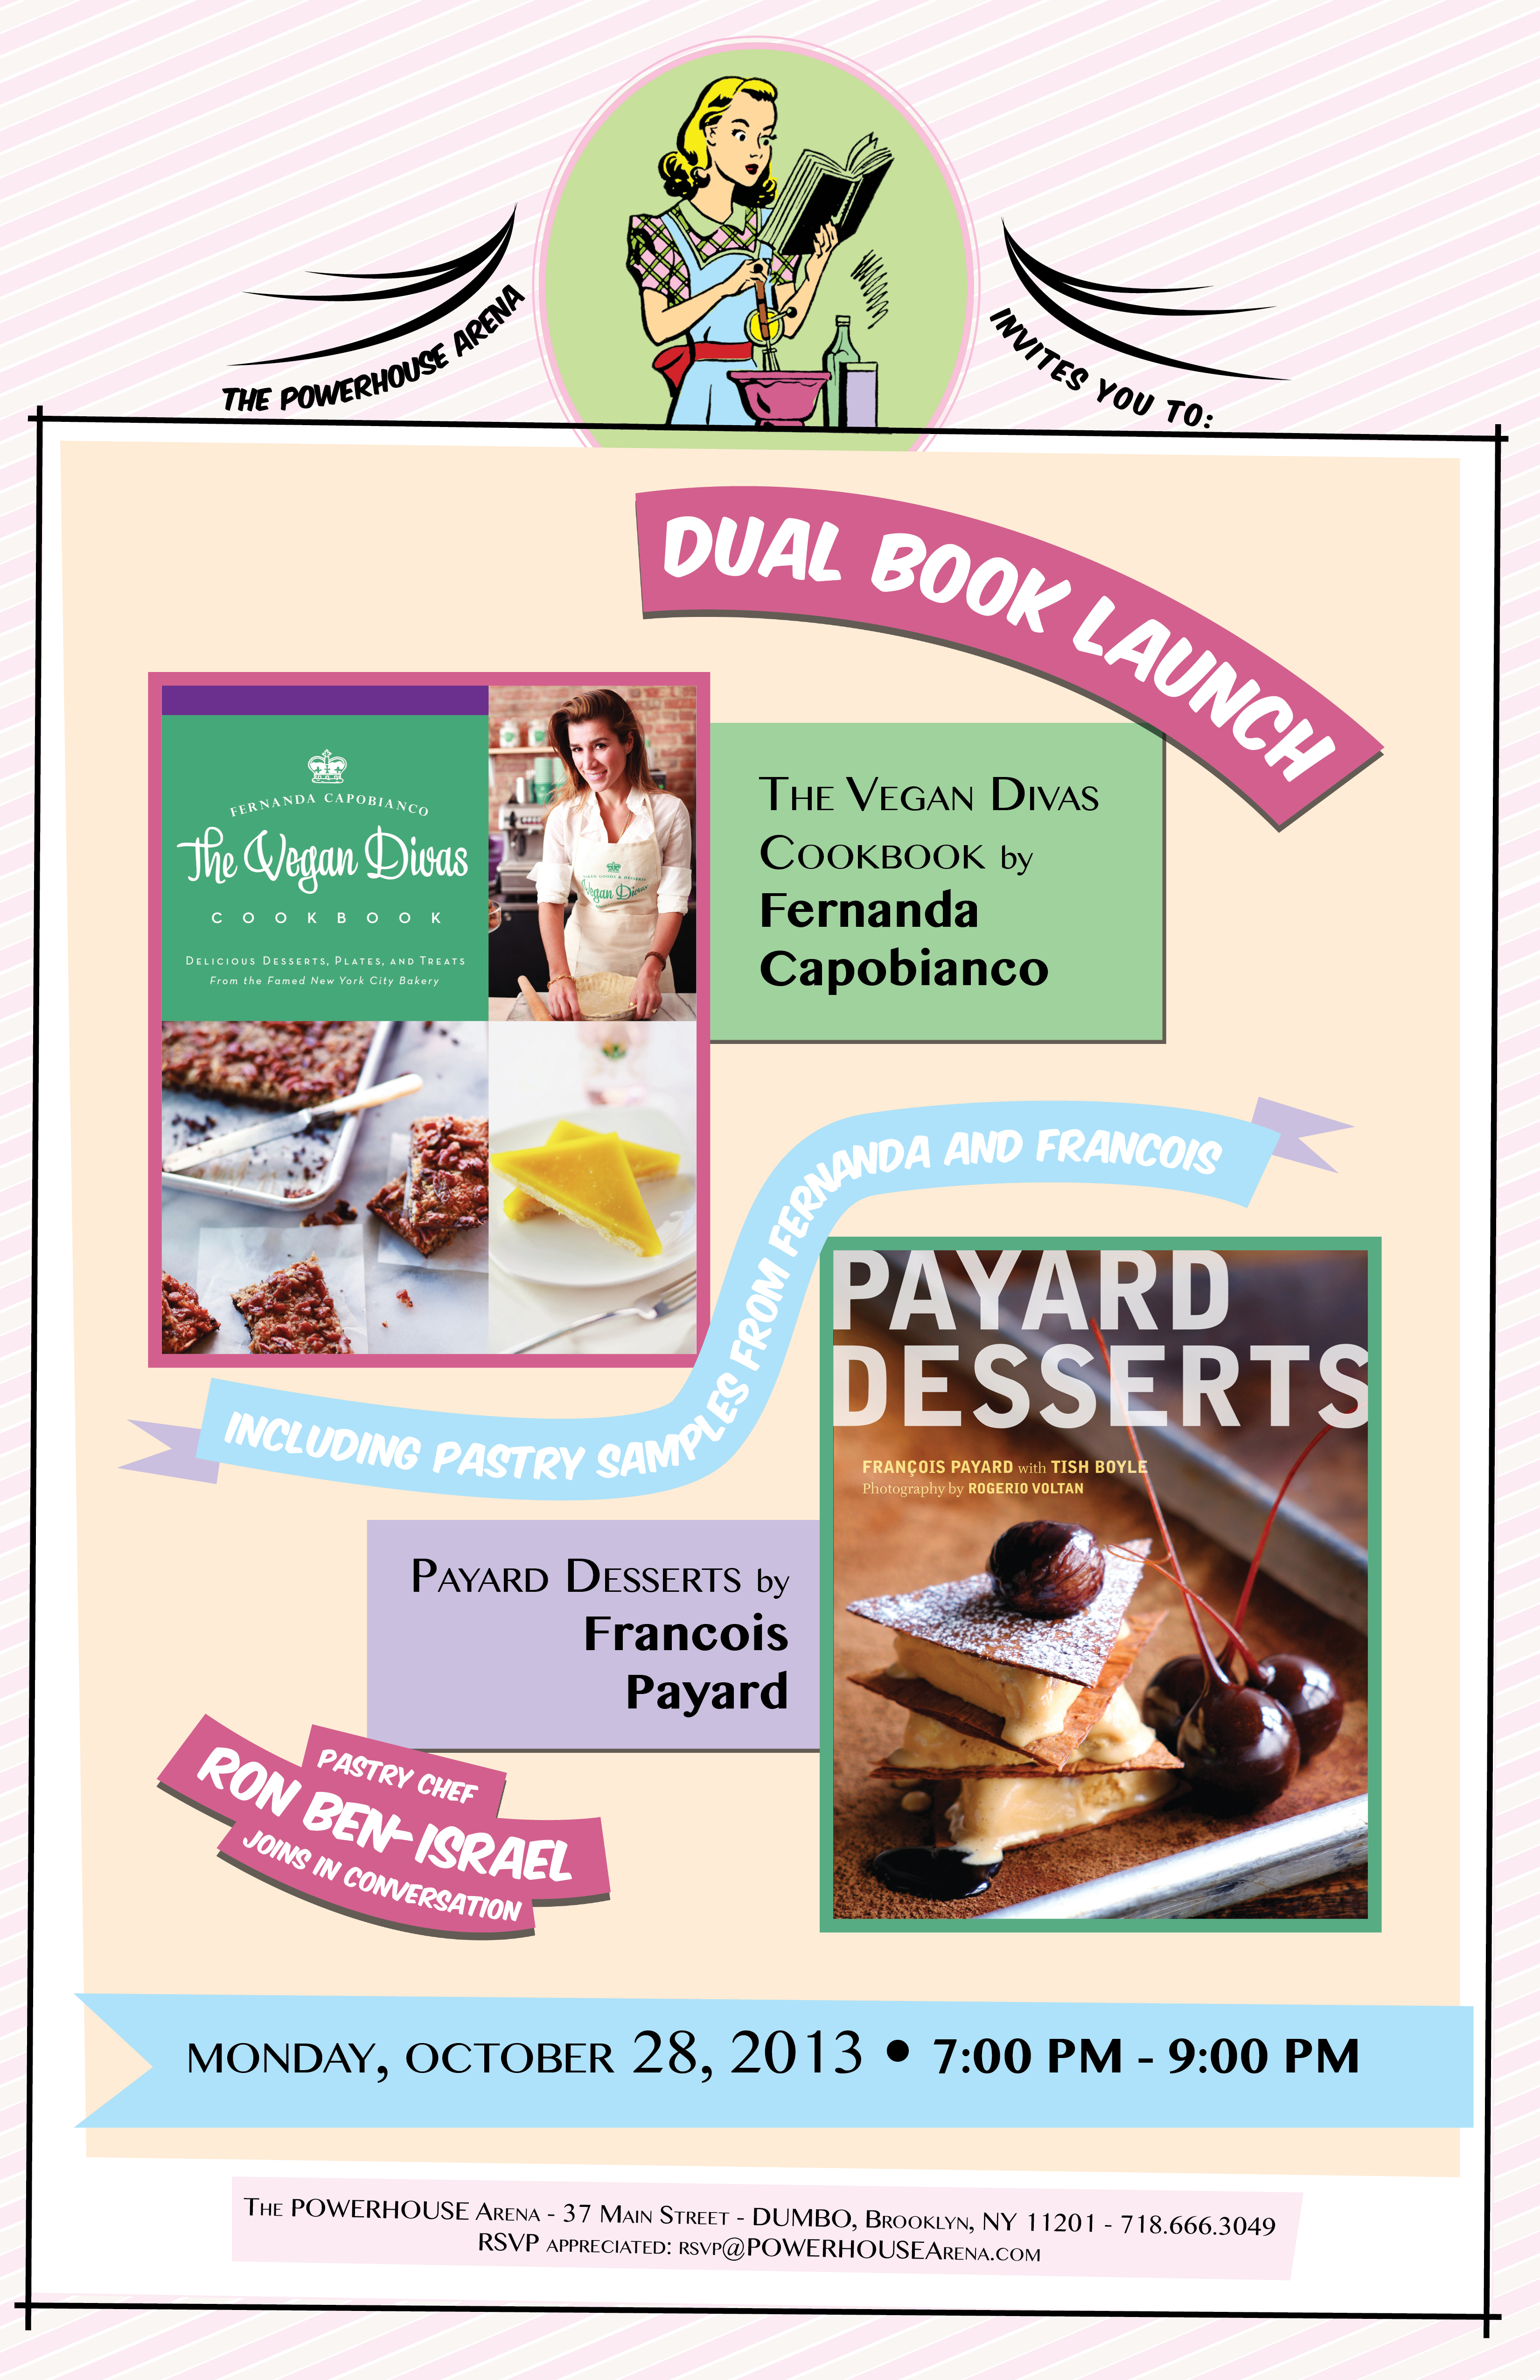 Dual Book Launch: The Vegan Divas Cookbook by Fernanda Capobianco and Payard Desserts by Francois Payard, with Ron Ben-Israel